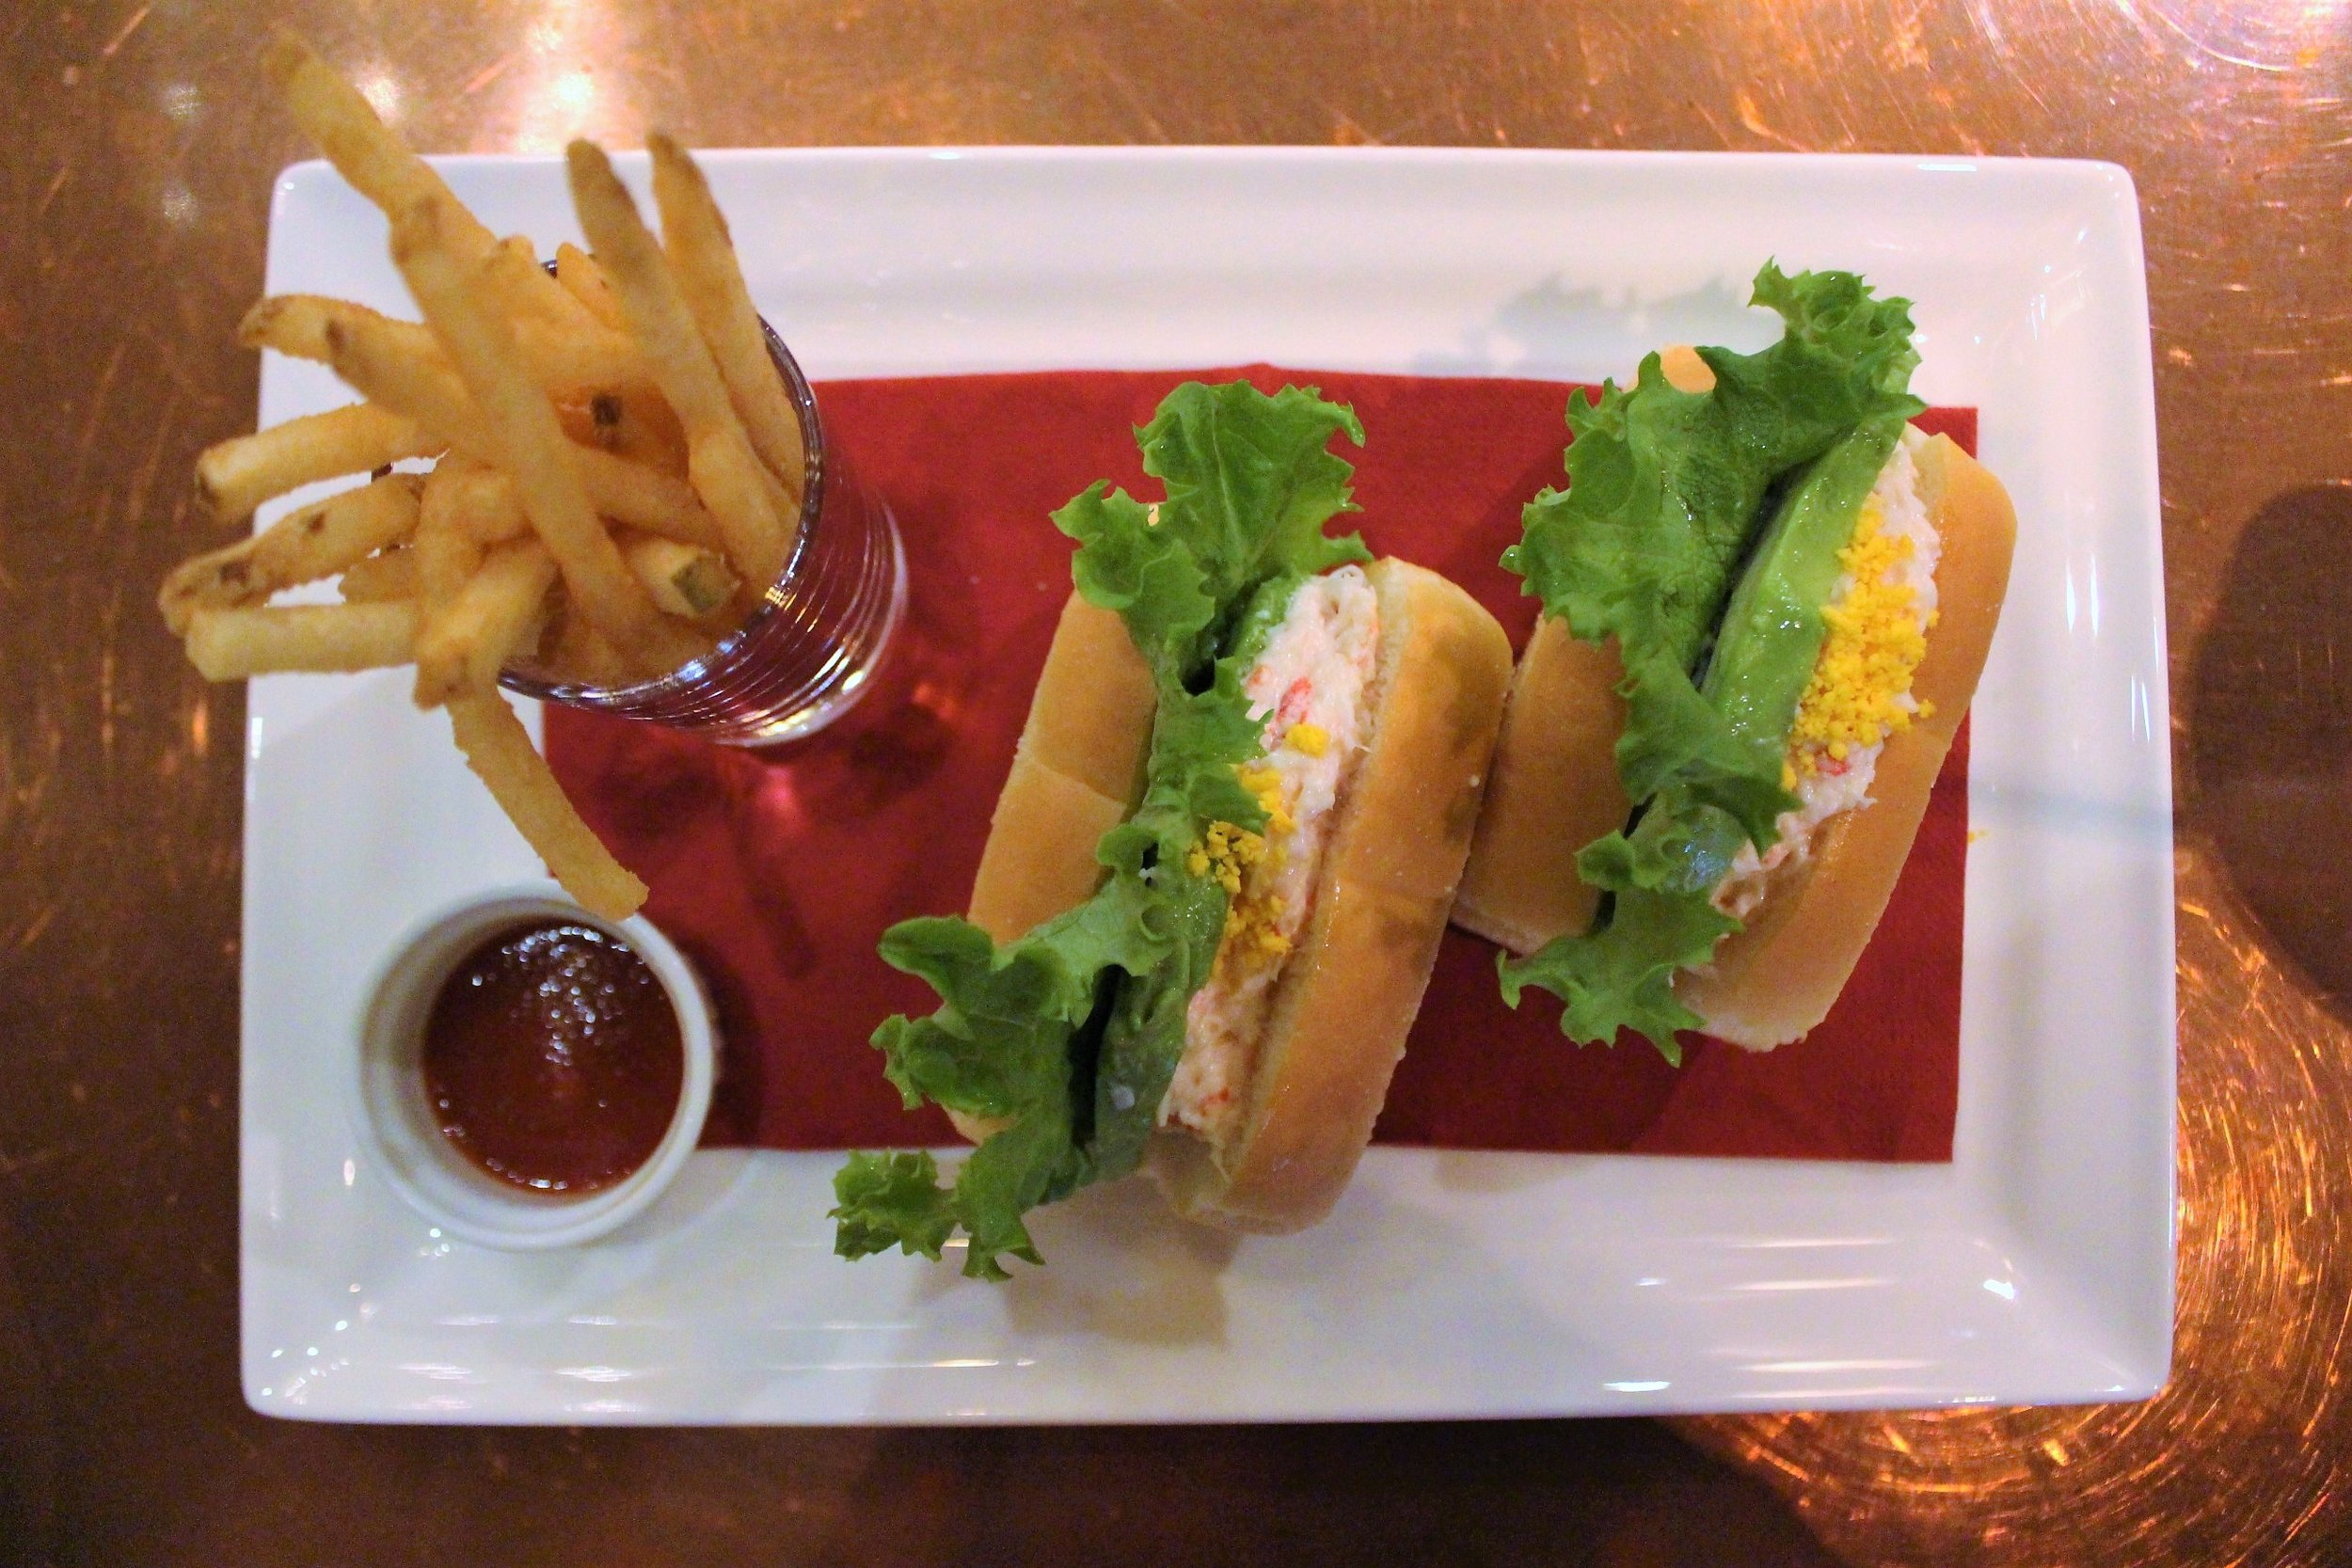 Chef's Special Sandwich with Snow Crab, Avocado, and French Fries at The Teddy Roosevelt Lounge in DisneySea Japan